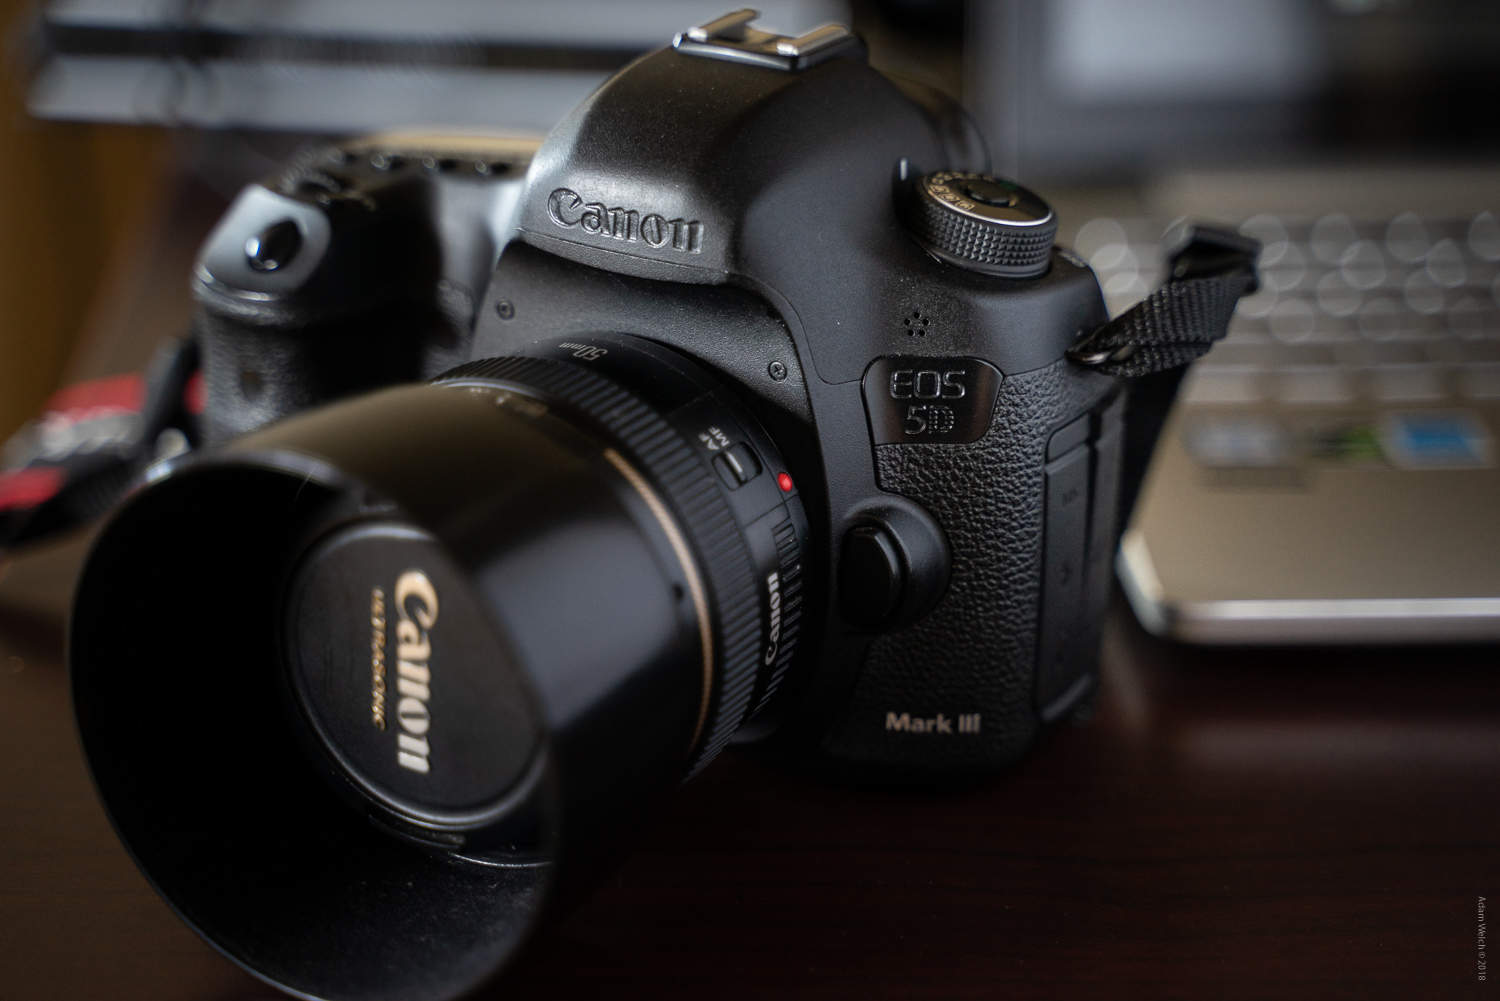 Canon camera and 50mm lens - Mobile Phones Versus DSLRs